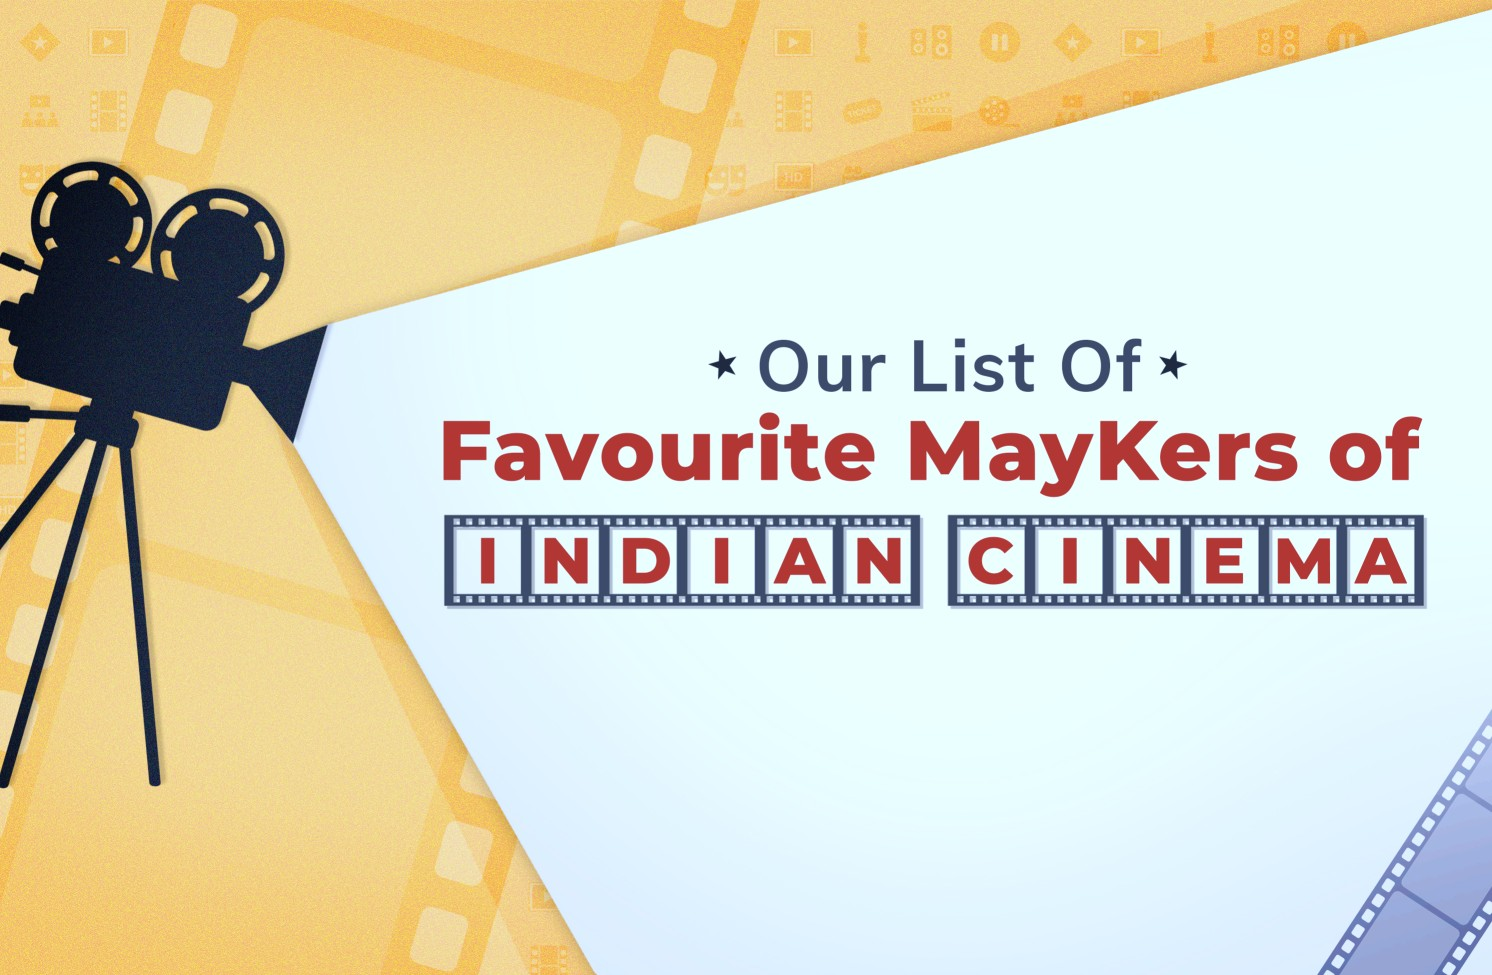 Eminent MayKers of Indian Cinema